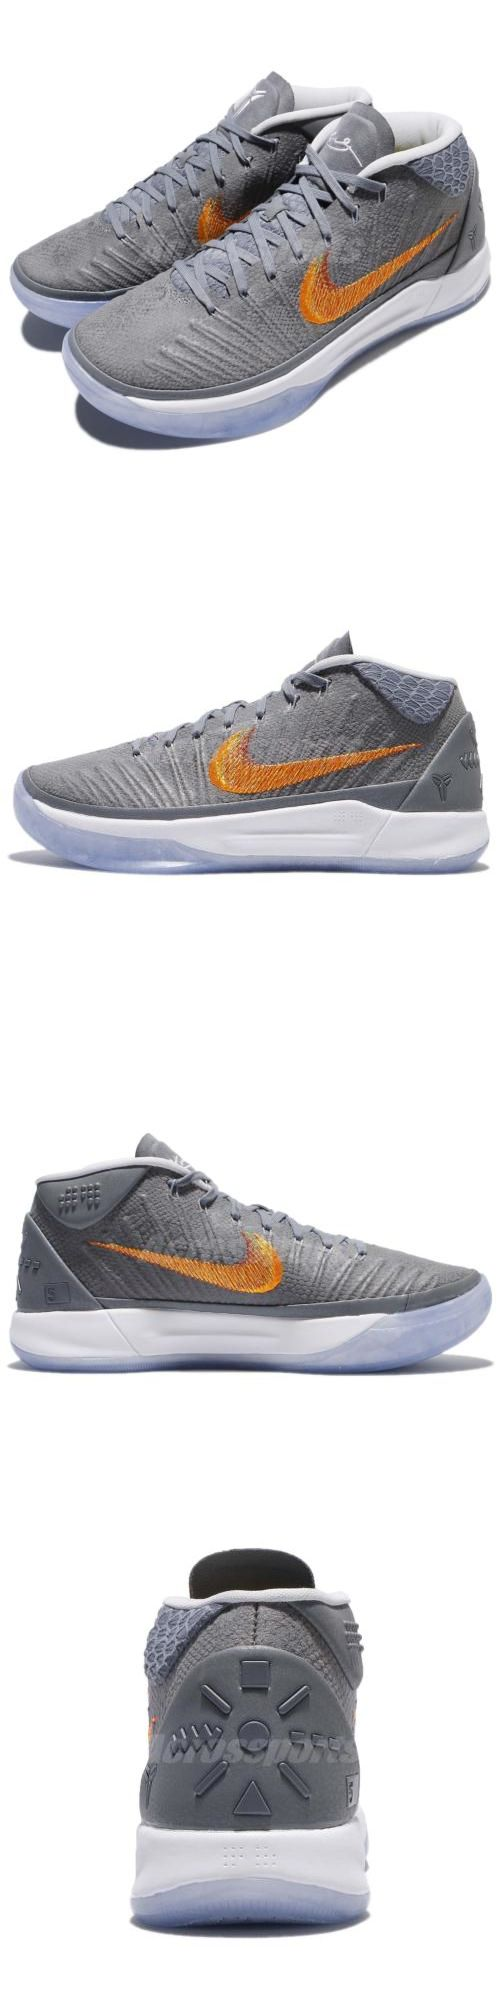 b4a088d6fb97 Clothing Shoes and Accessories 158963  Nike Kobe Ad Ep Mid Grey Snake  Chrome Habanero Bryant Men Basketball 92…